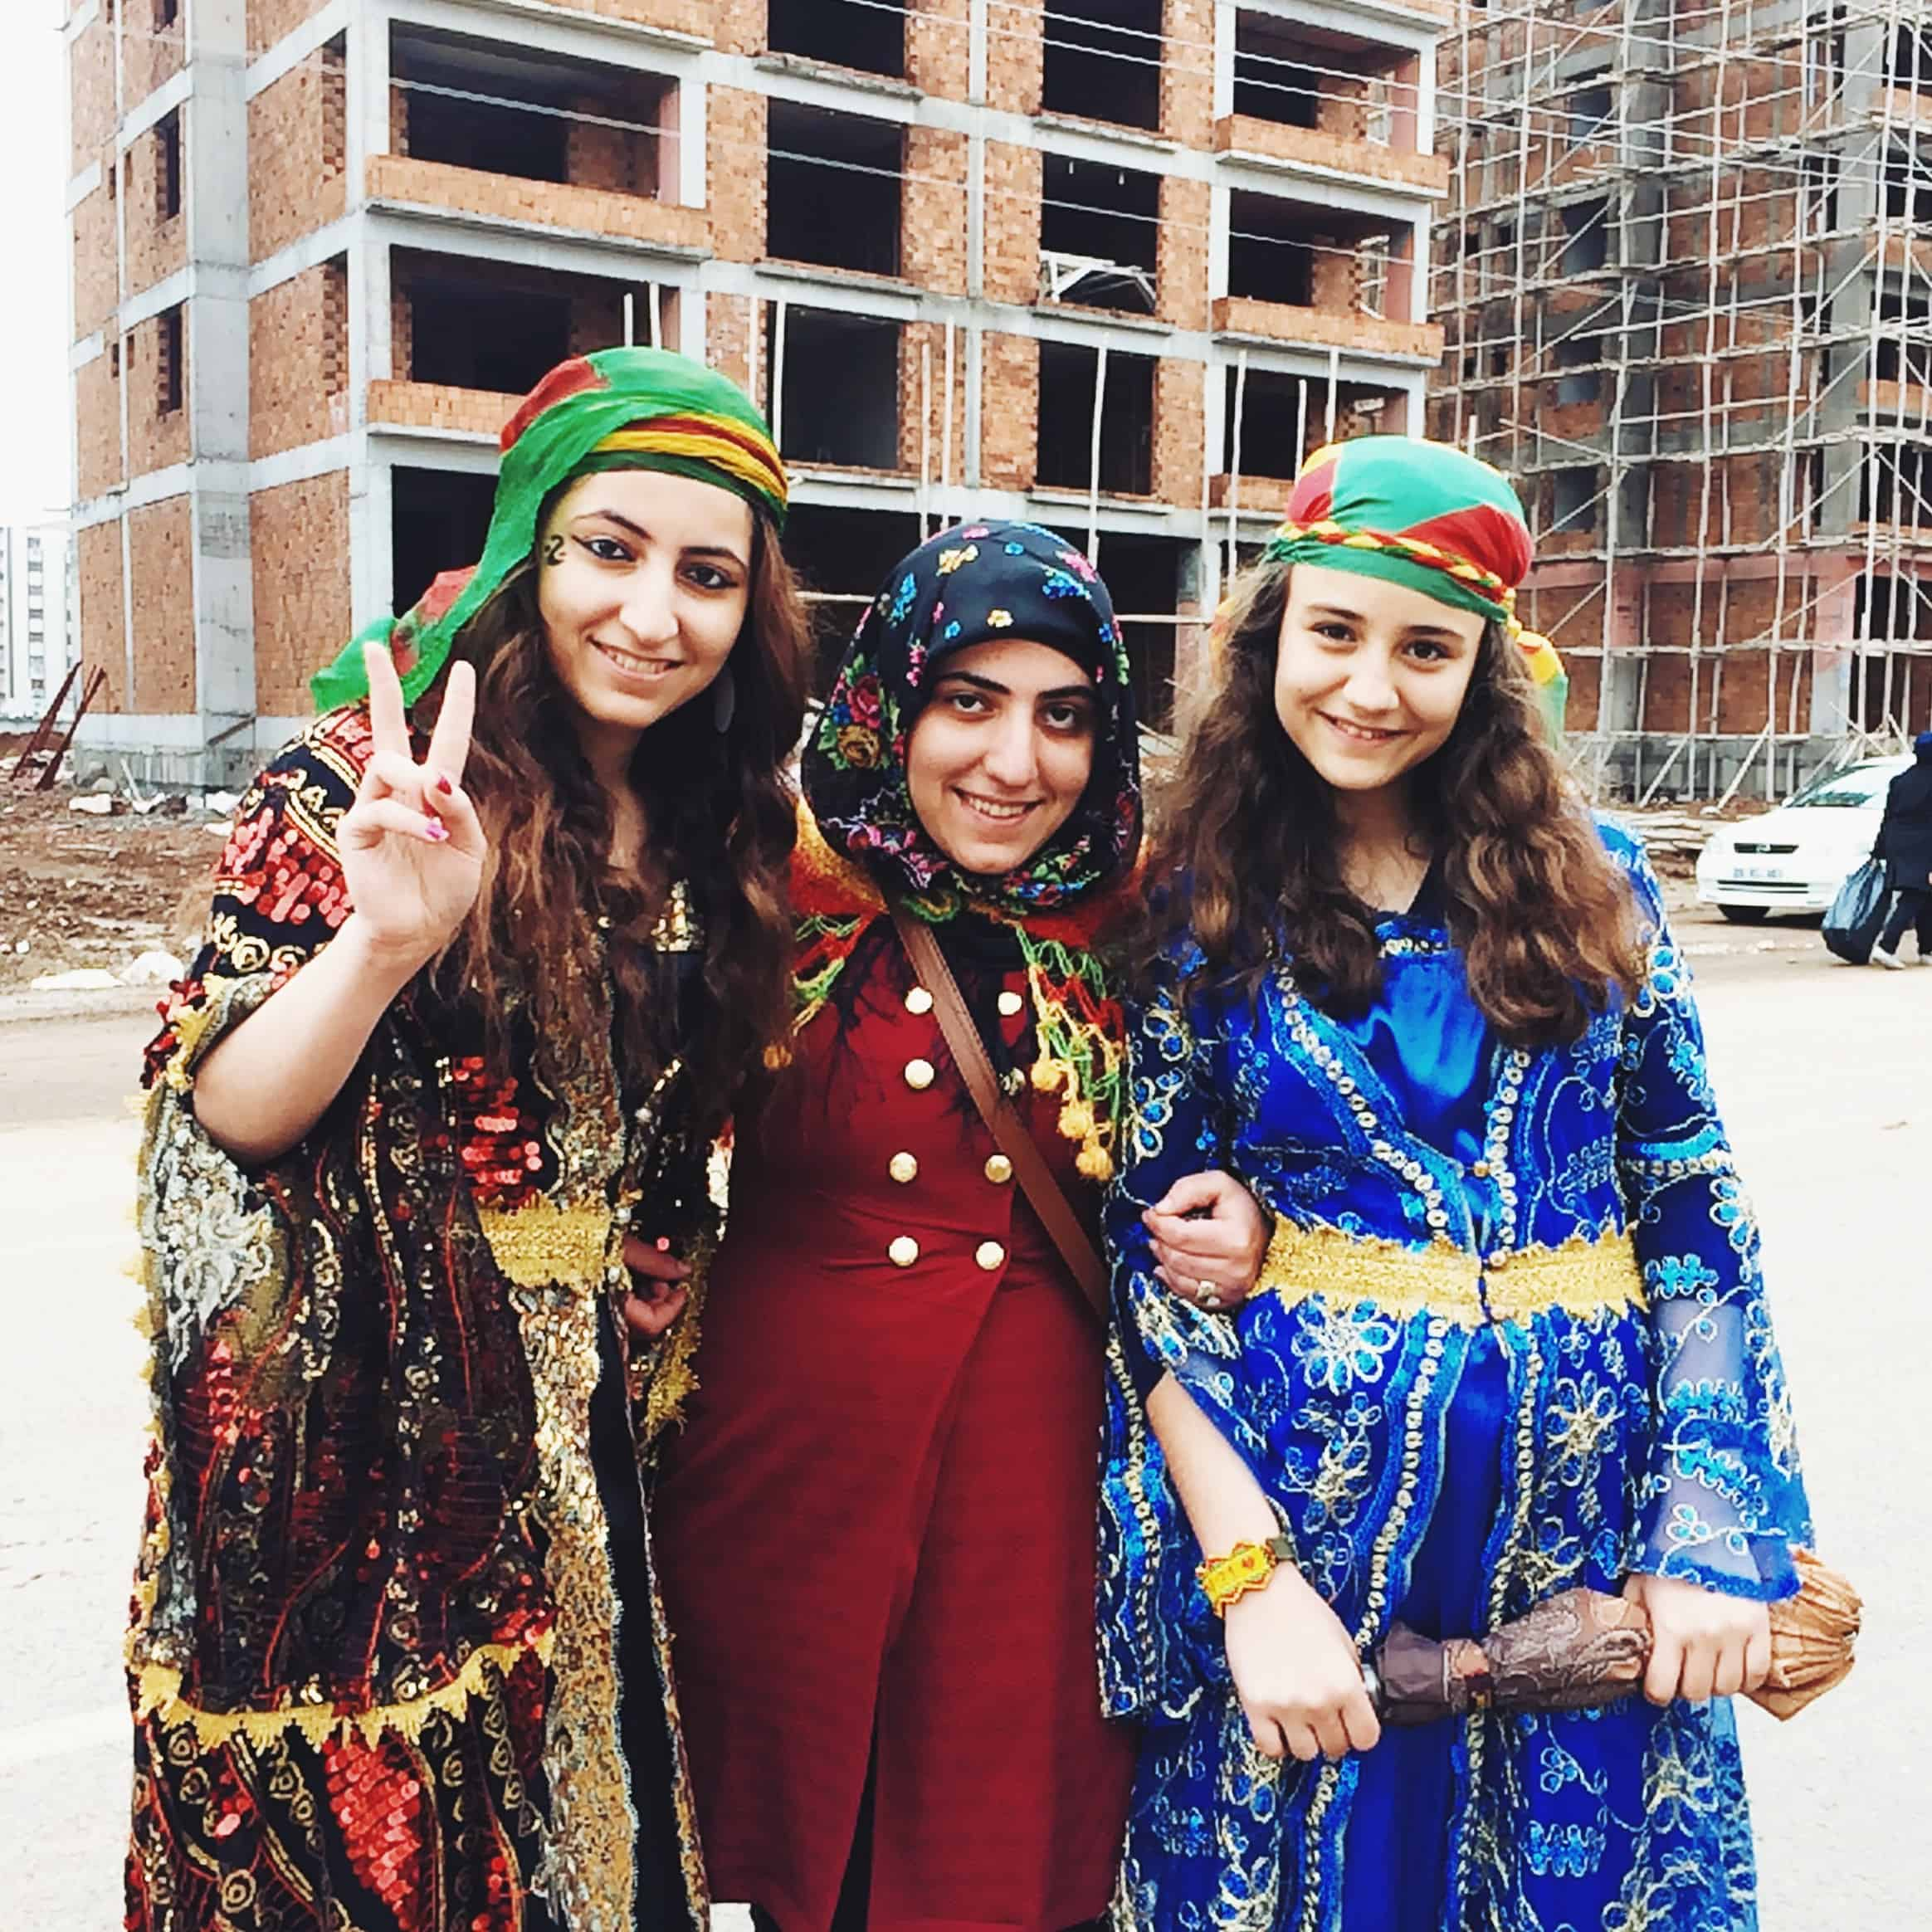 diyarbakir girls The largest diyarbakir brides girls matrimony website with lakhs of diyarbakir brides girls matrimonial profiles, shaadi is trusted by over 20 million for matrimony find diyarbakir brides girls matches join free.